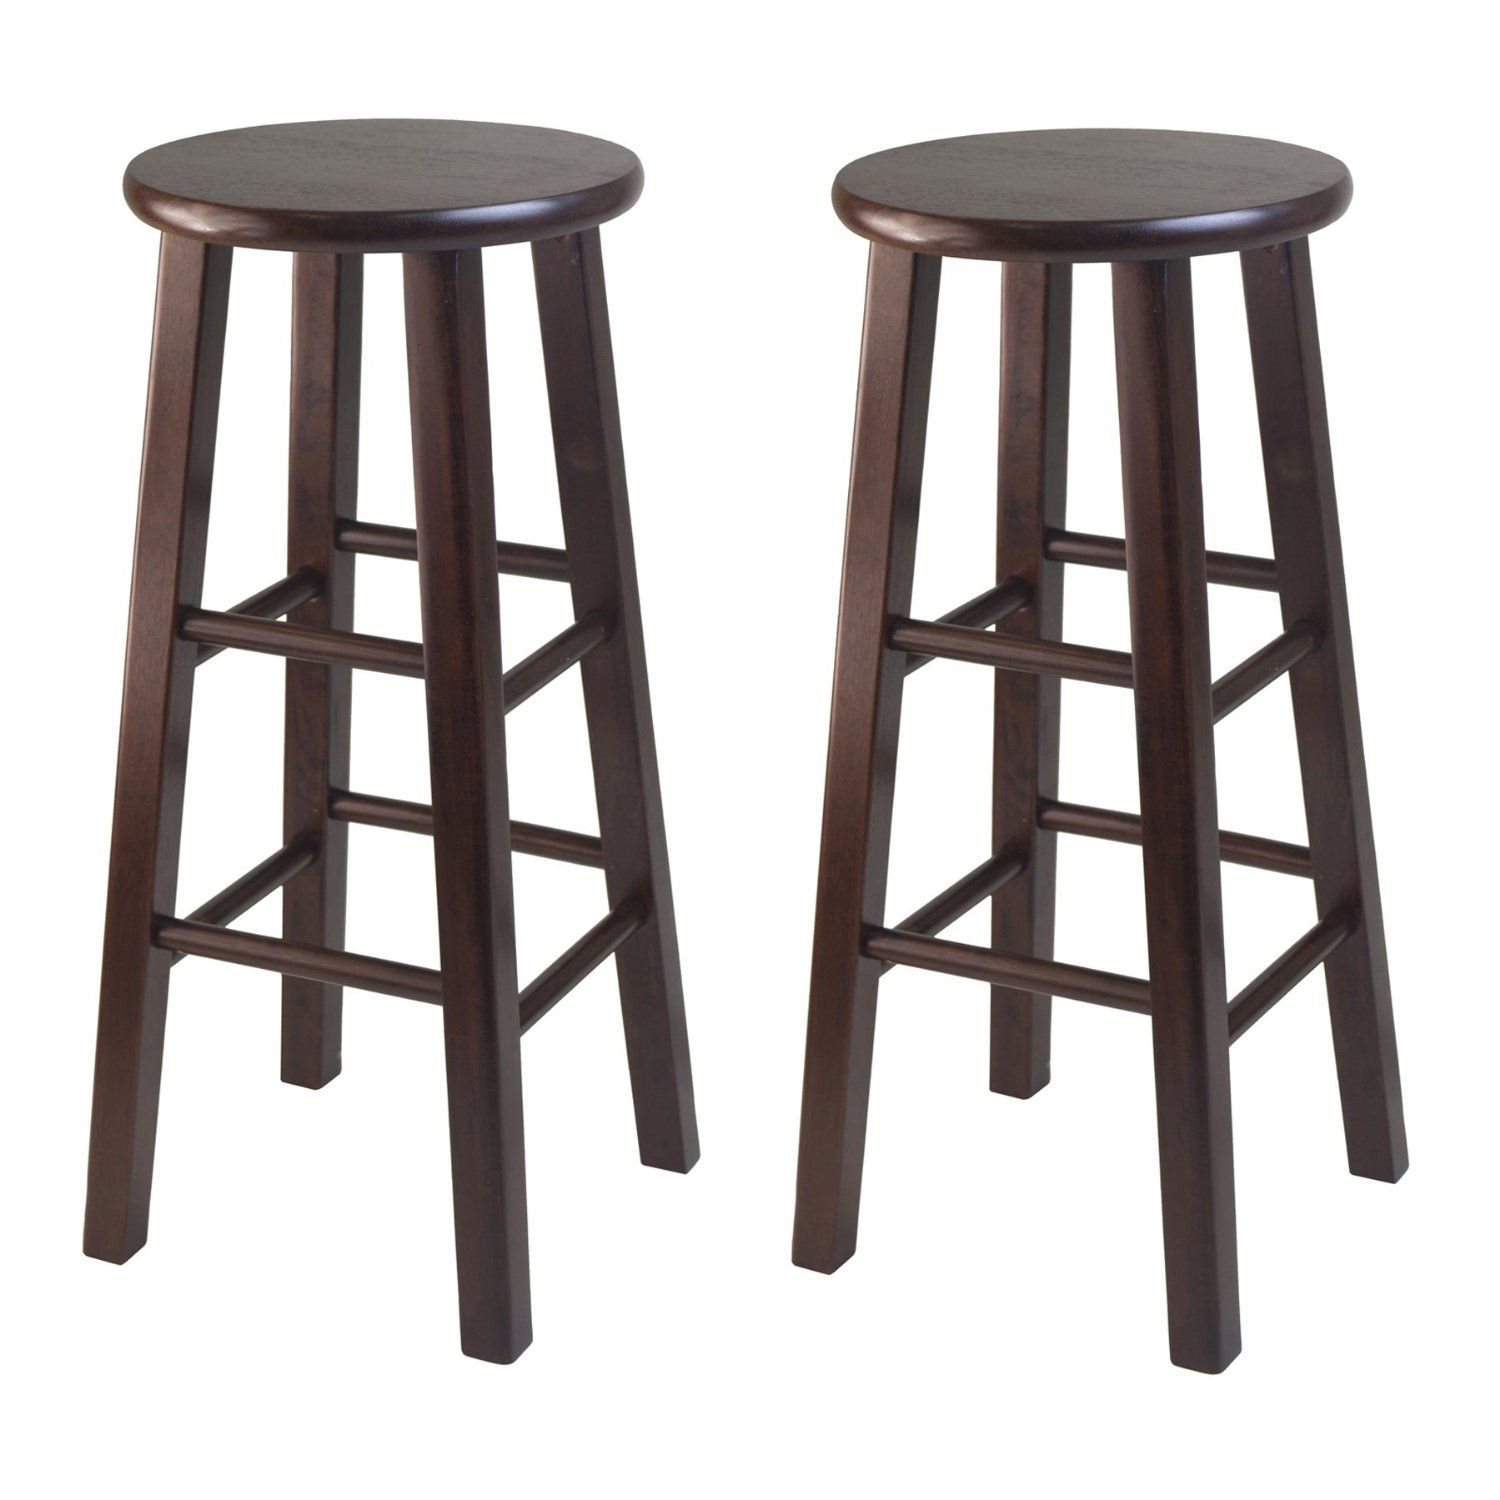 Furniture Traditional Dark Wooden Kitchen Bar Stool With Rounded Seat Extra  Tall Bar Stools - Furniture - Wooden Bar Stools For Sale Show Home Design